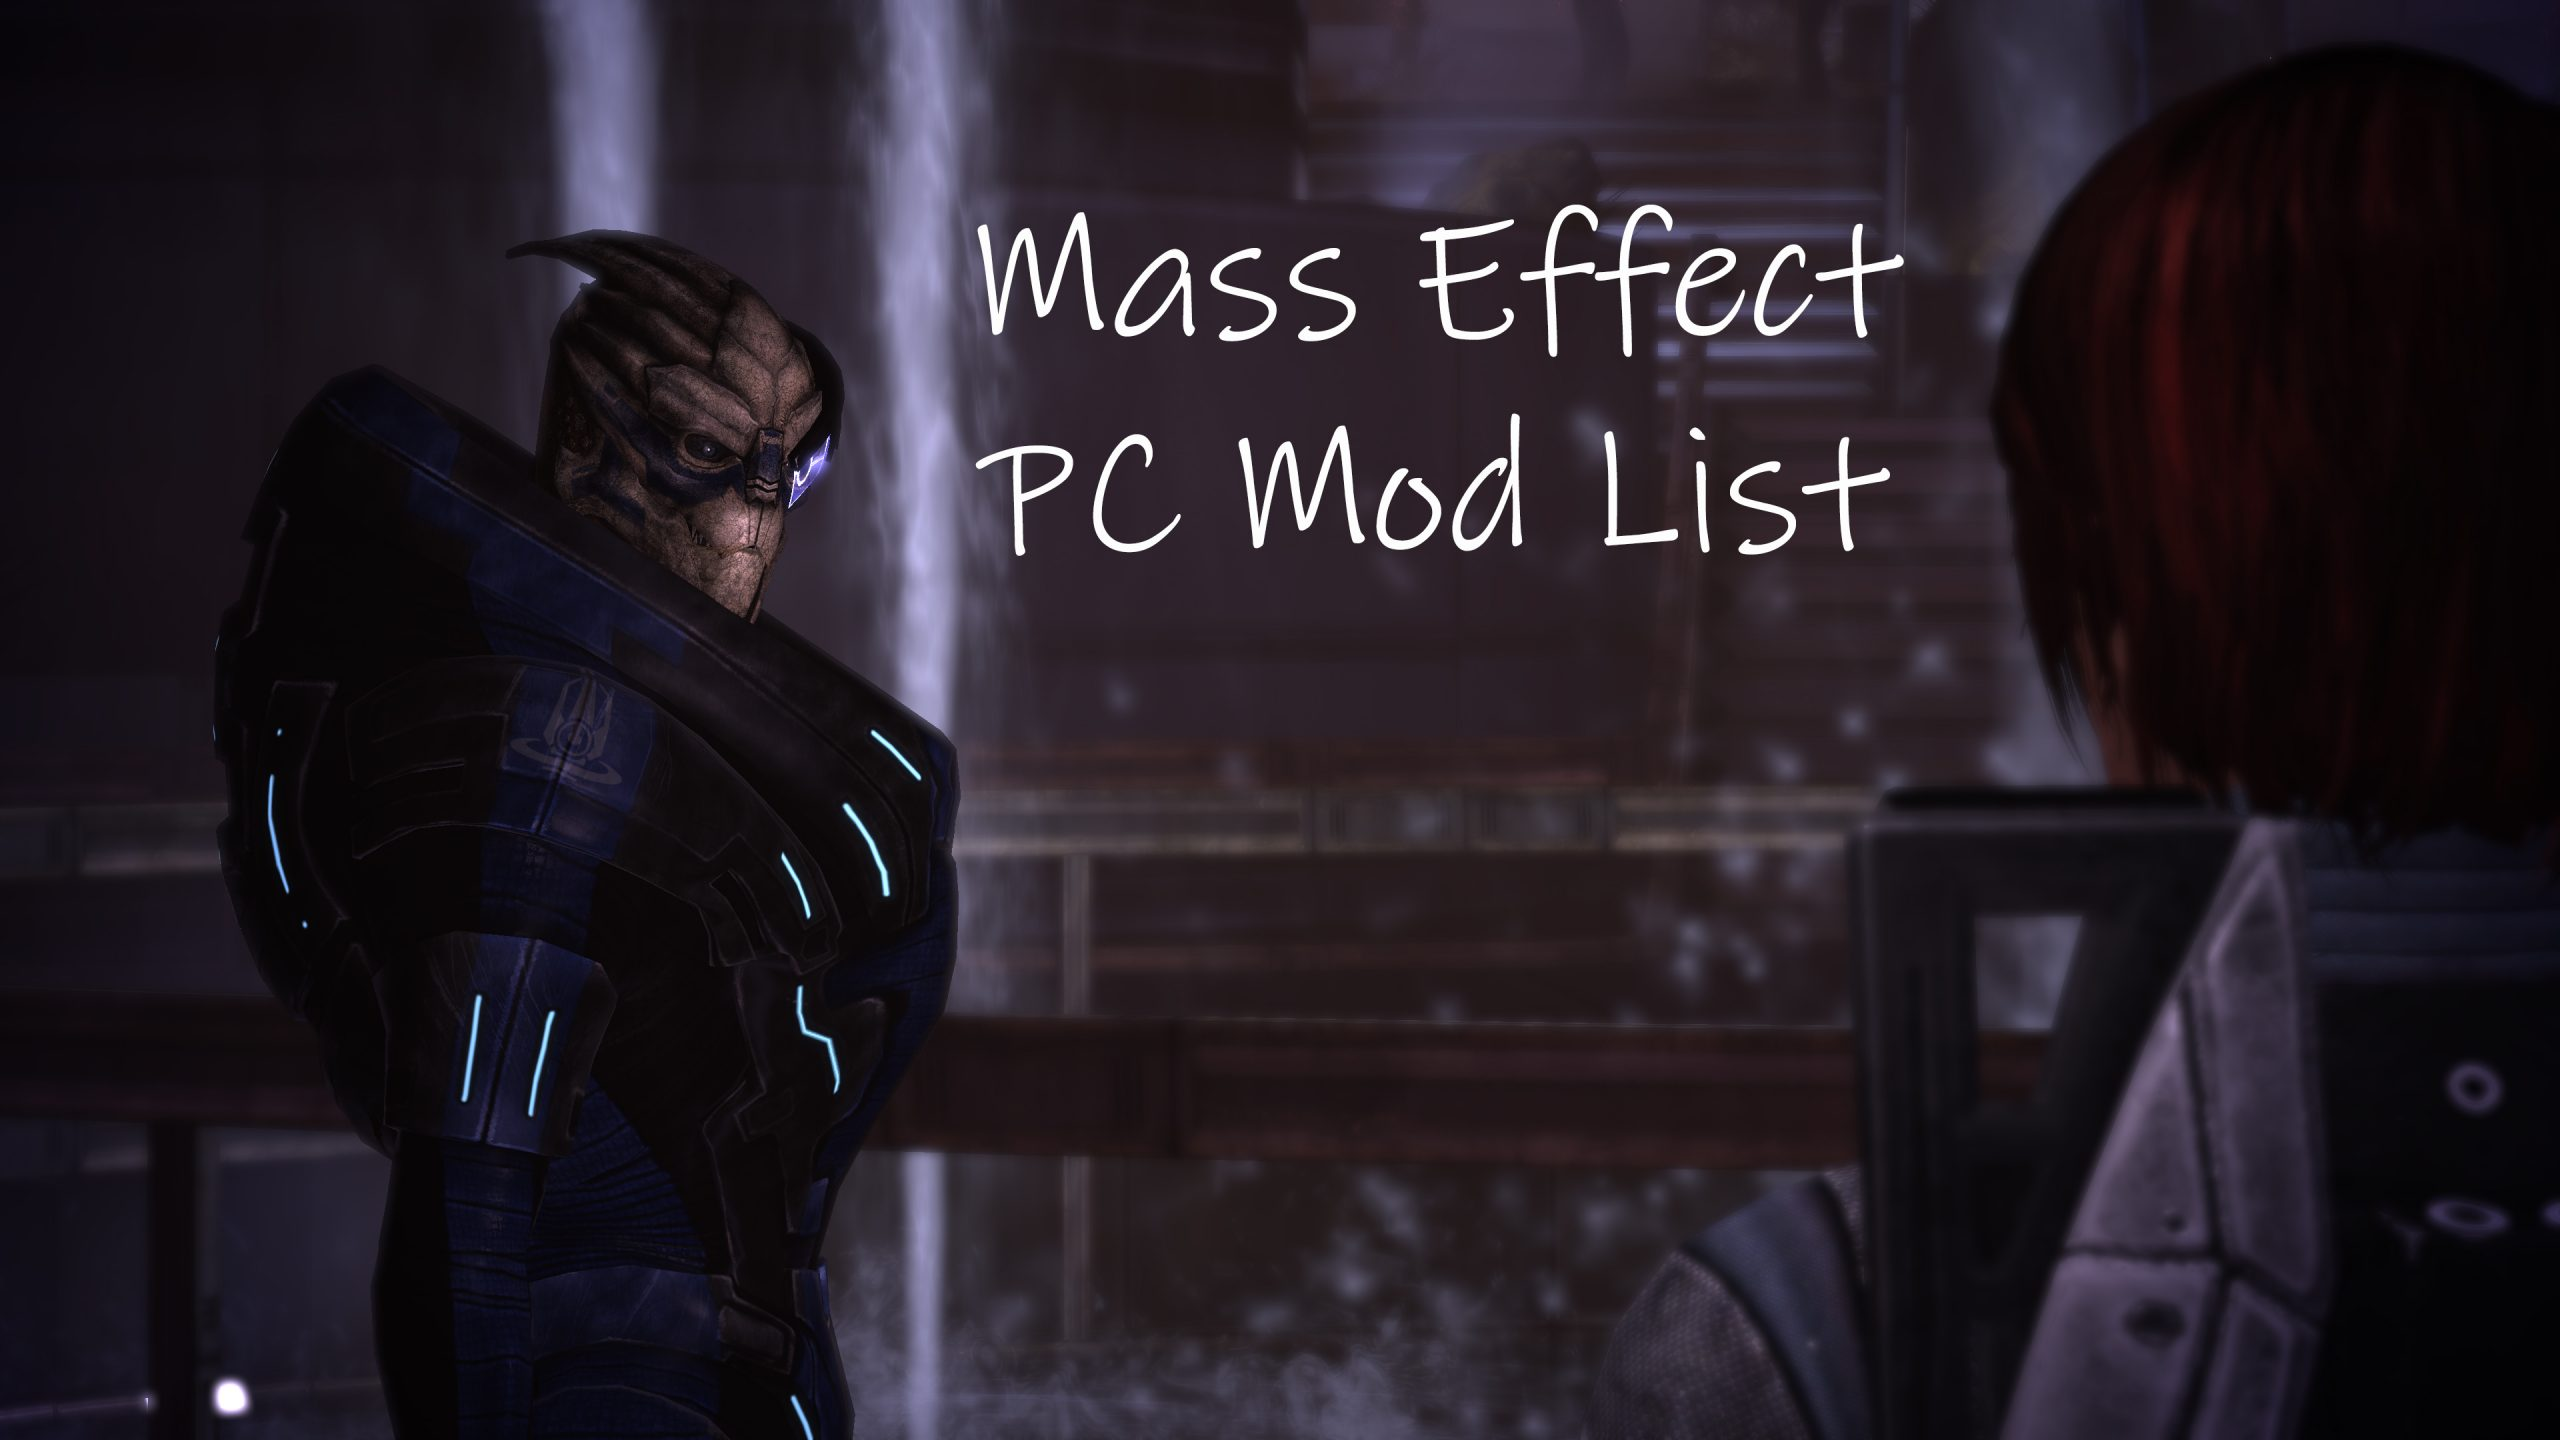 Mass Effect PC Mod List | Foodthengames.com